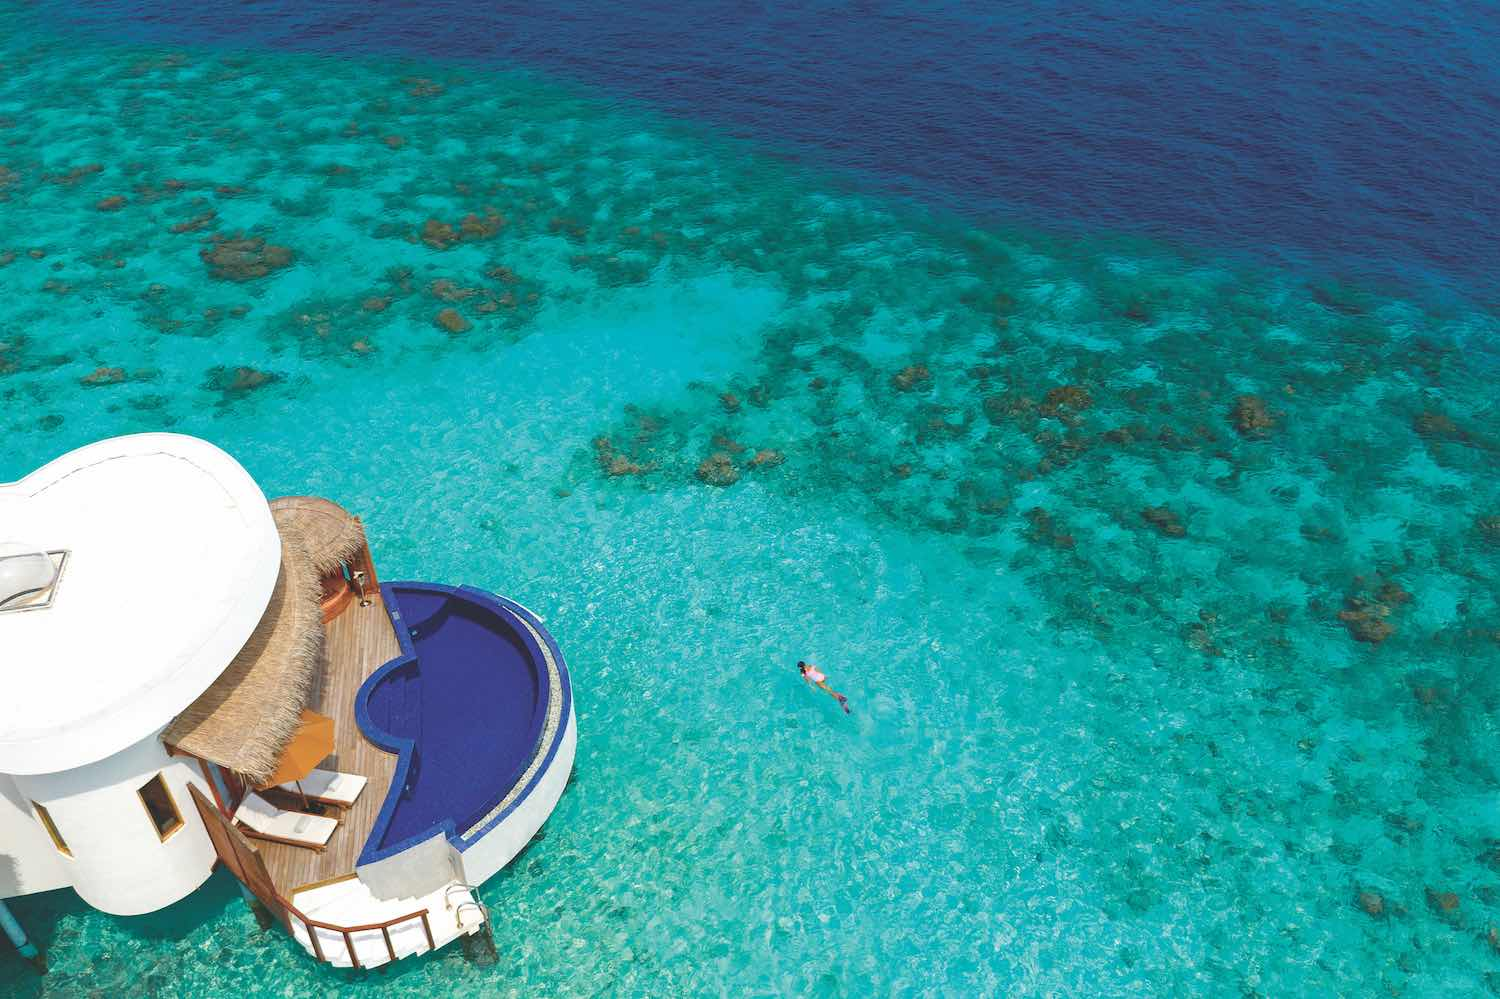 maldives-oblu-select-at-sangeli-honeymoon-water-suite-with-pool-3-holiday-honeymoon-vacation-invite-to-paradise.jpg